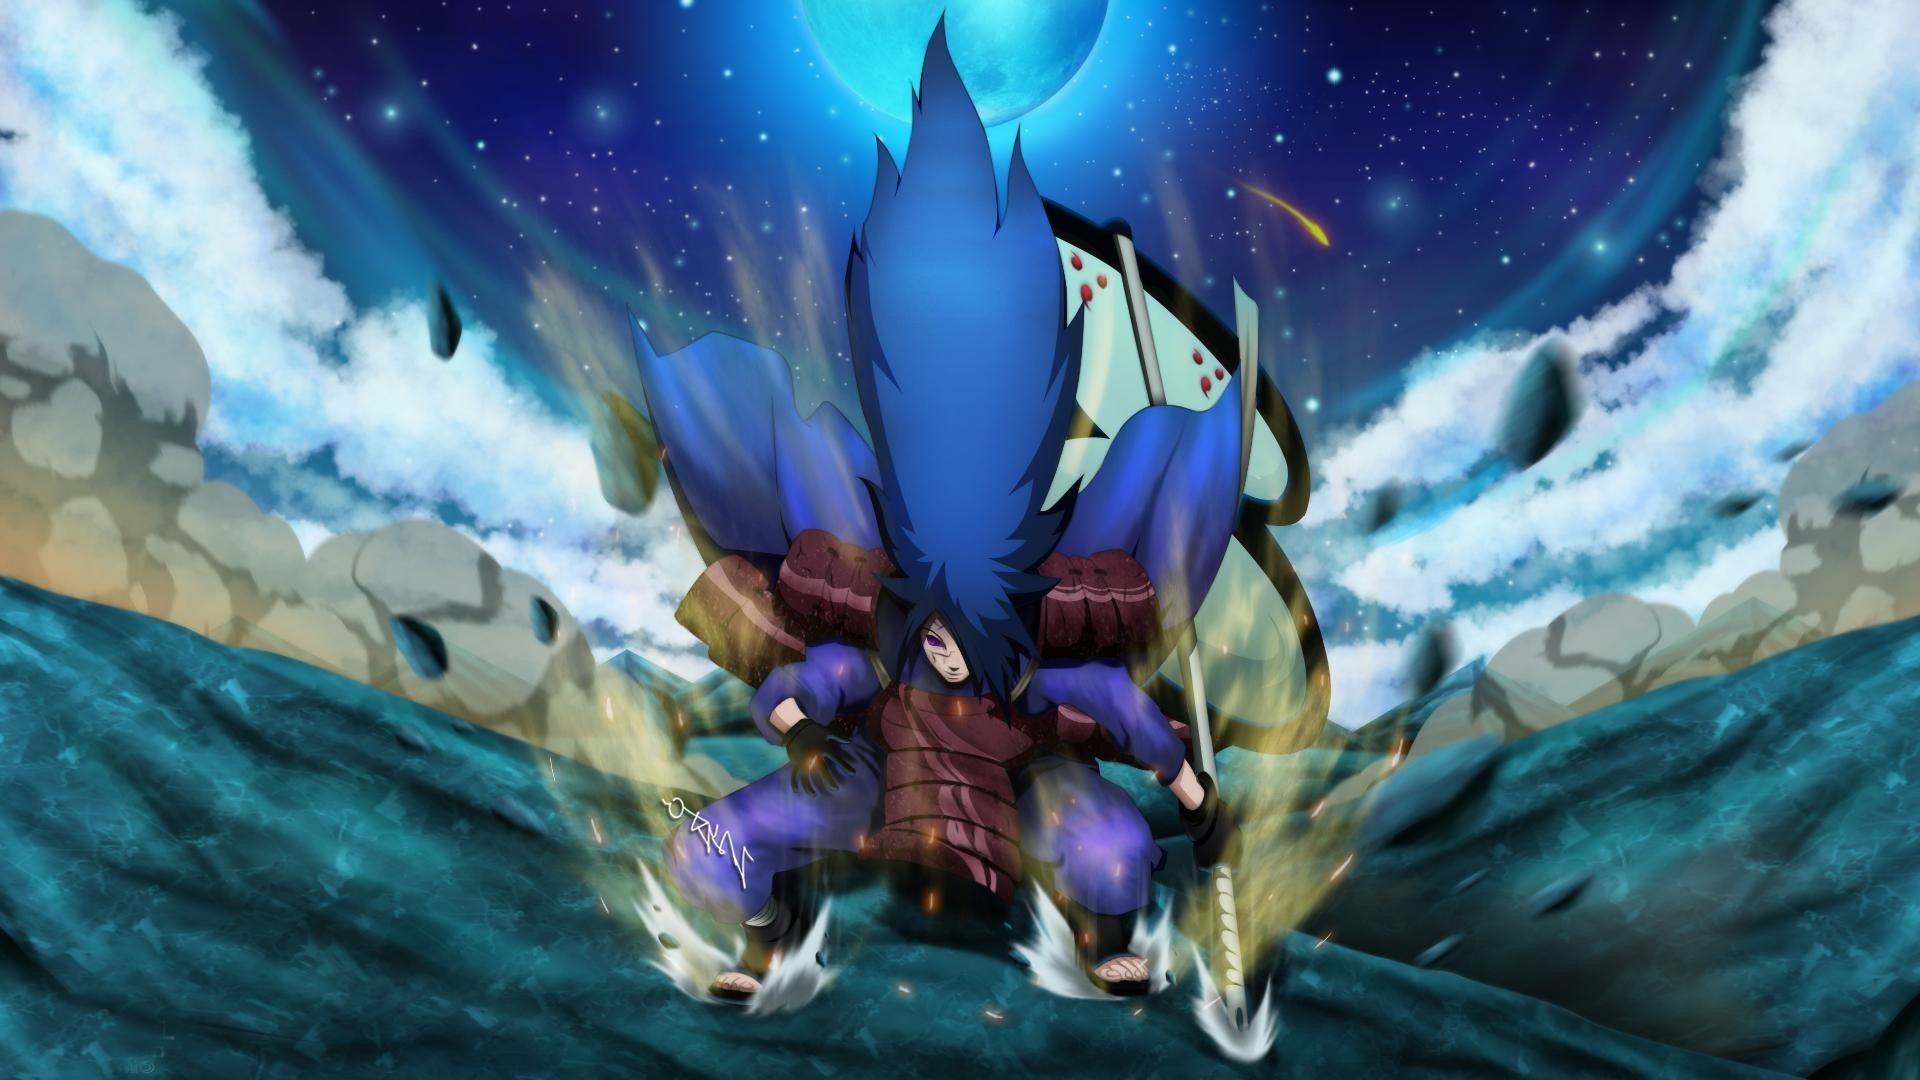 Madara Uchiha Wallpaper Collection For Free Download